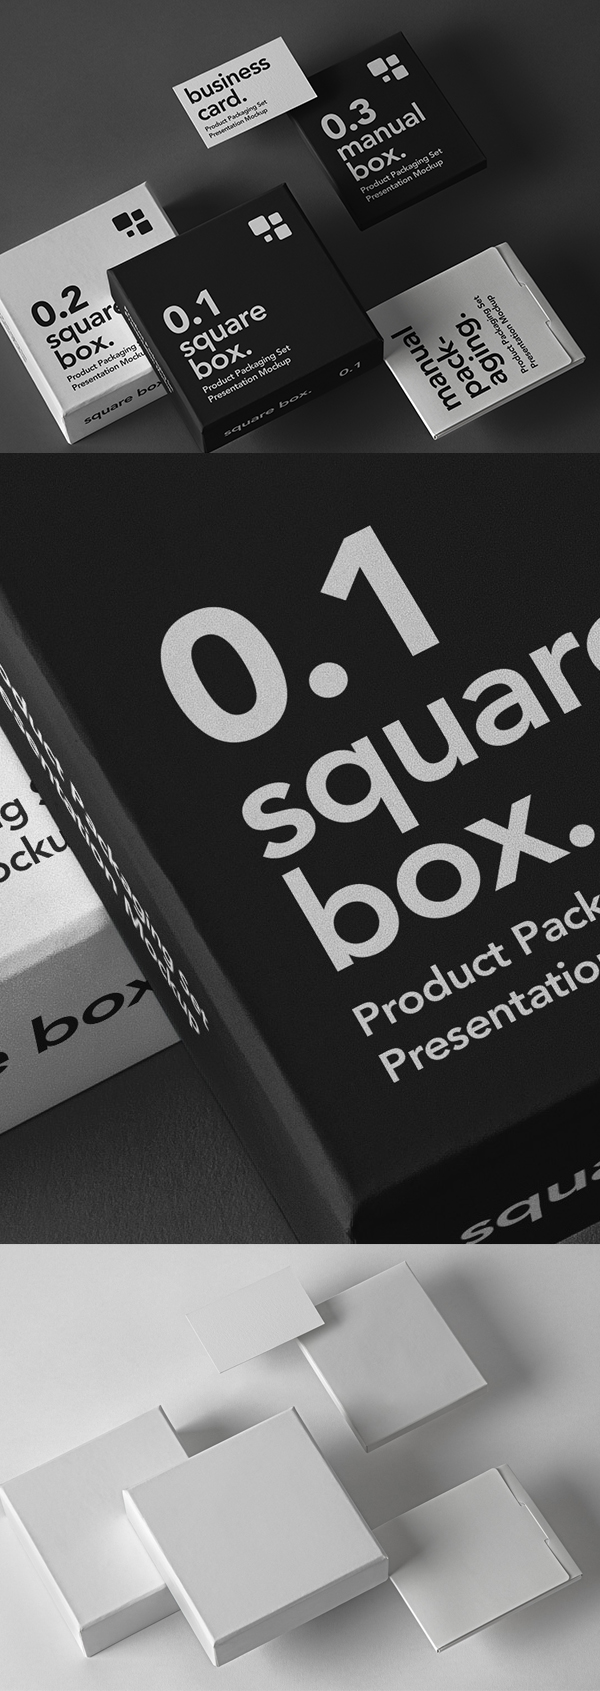 Free Psd Product Packaging Mockup Set